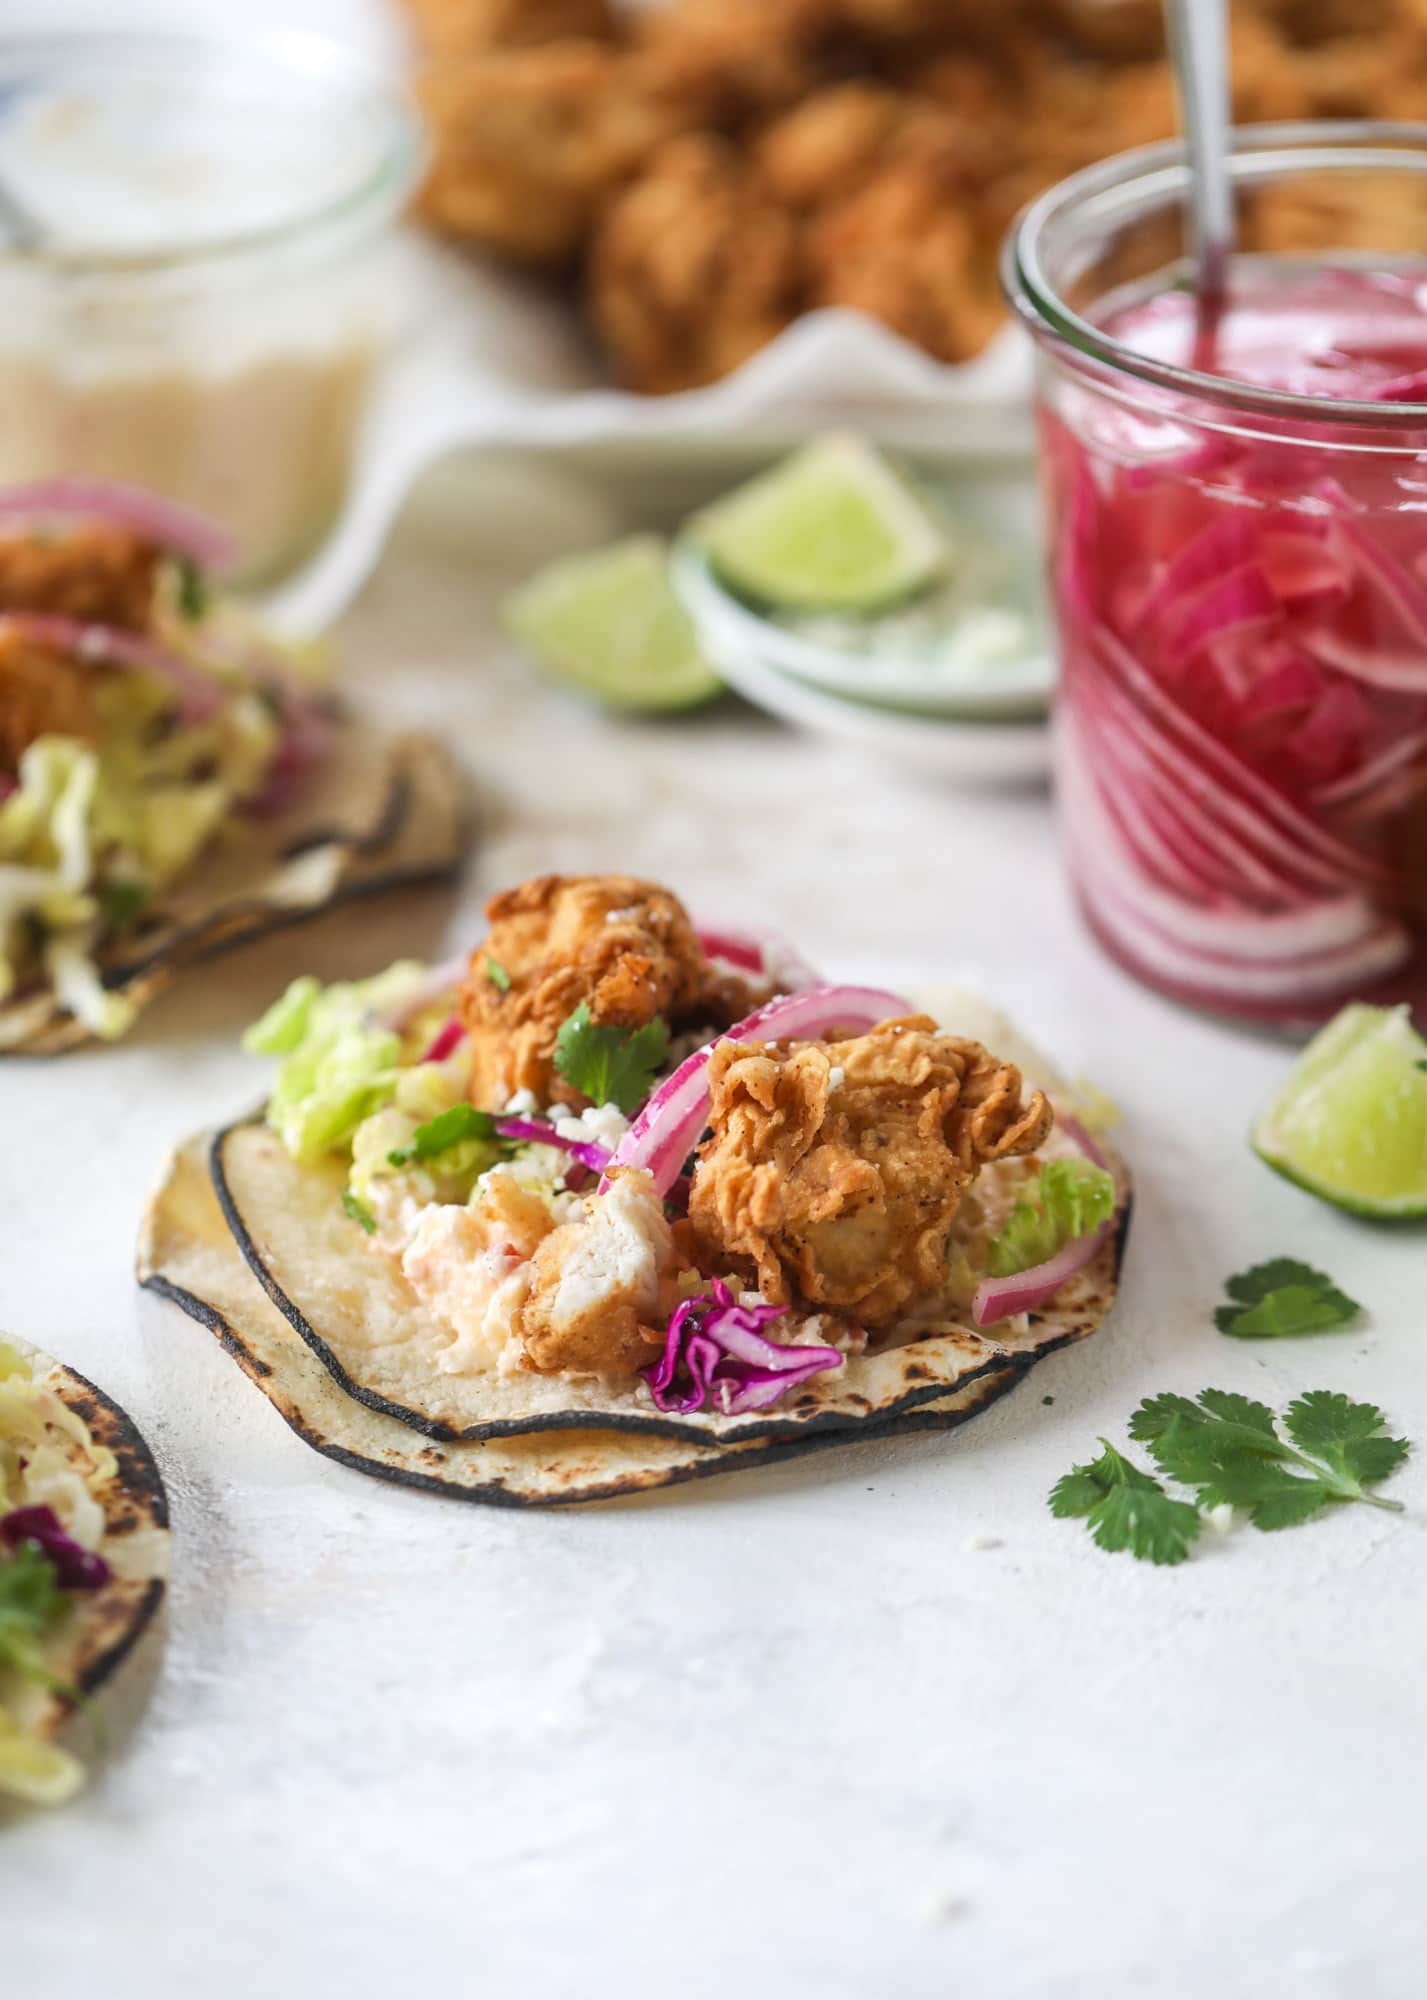 Taking crispy chicken tacos to the next level by wrapping them in a warm tortilla with gouda pimento cheese, lime cabbage and pickled onions!